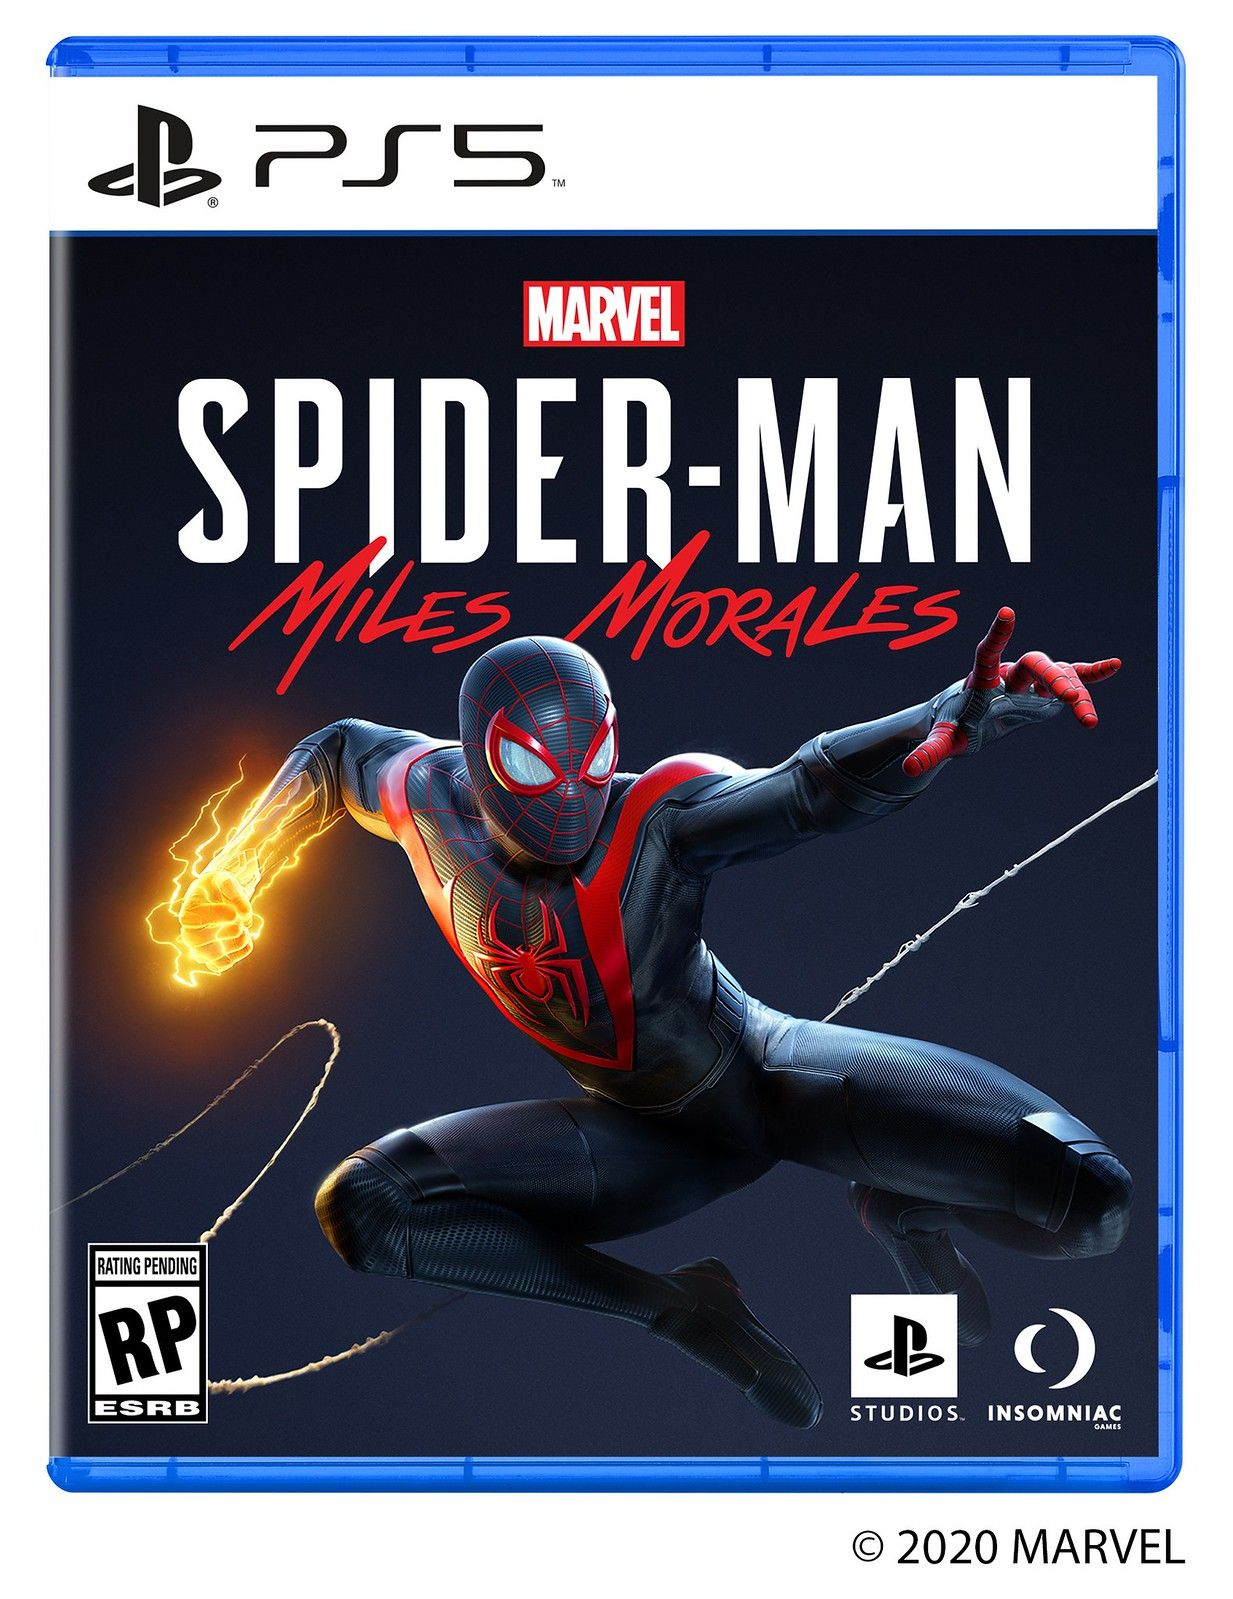 Spider-Man: Miles Morales entra em ação no PlayStation 5 Box Art 1